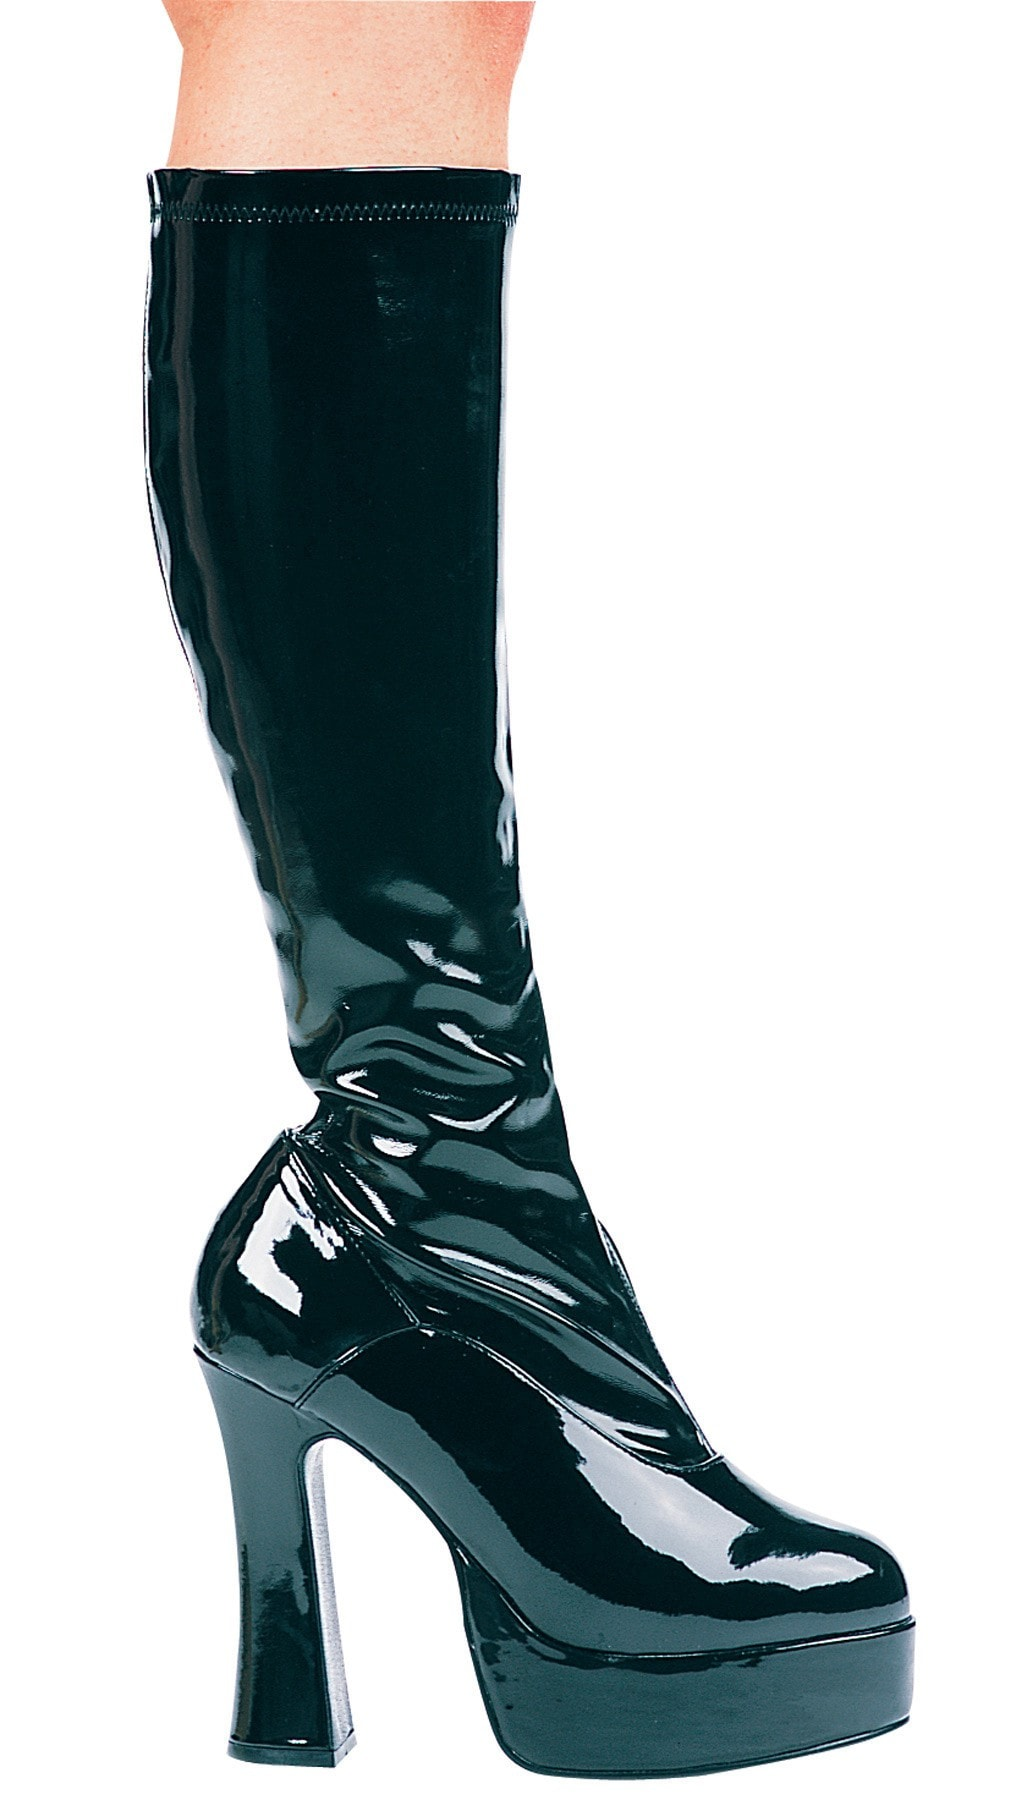 Morris Boot Chacha Black Size 8 - MaxWigs